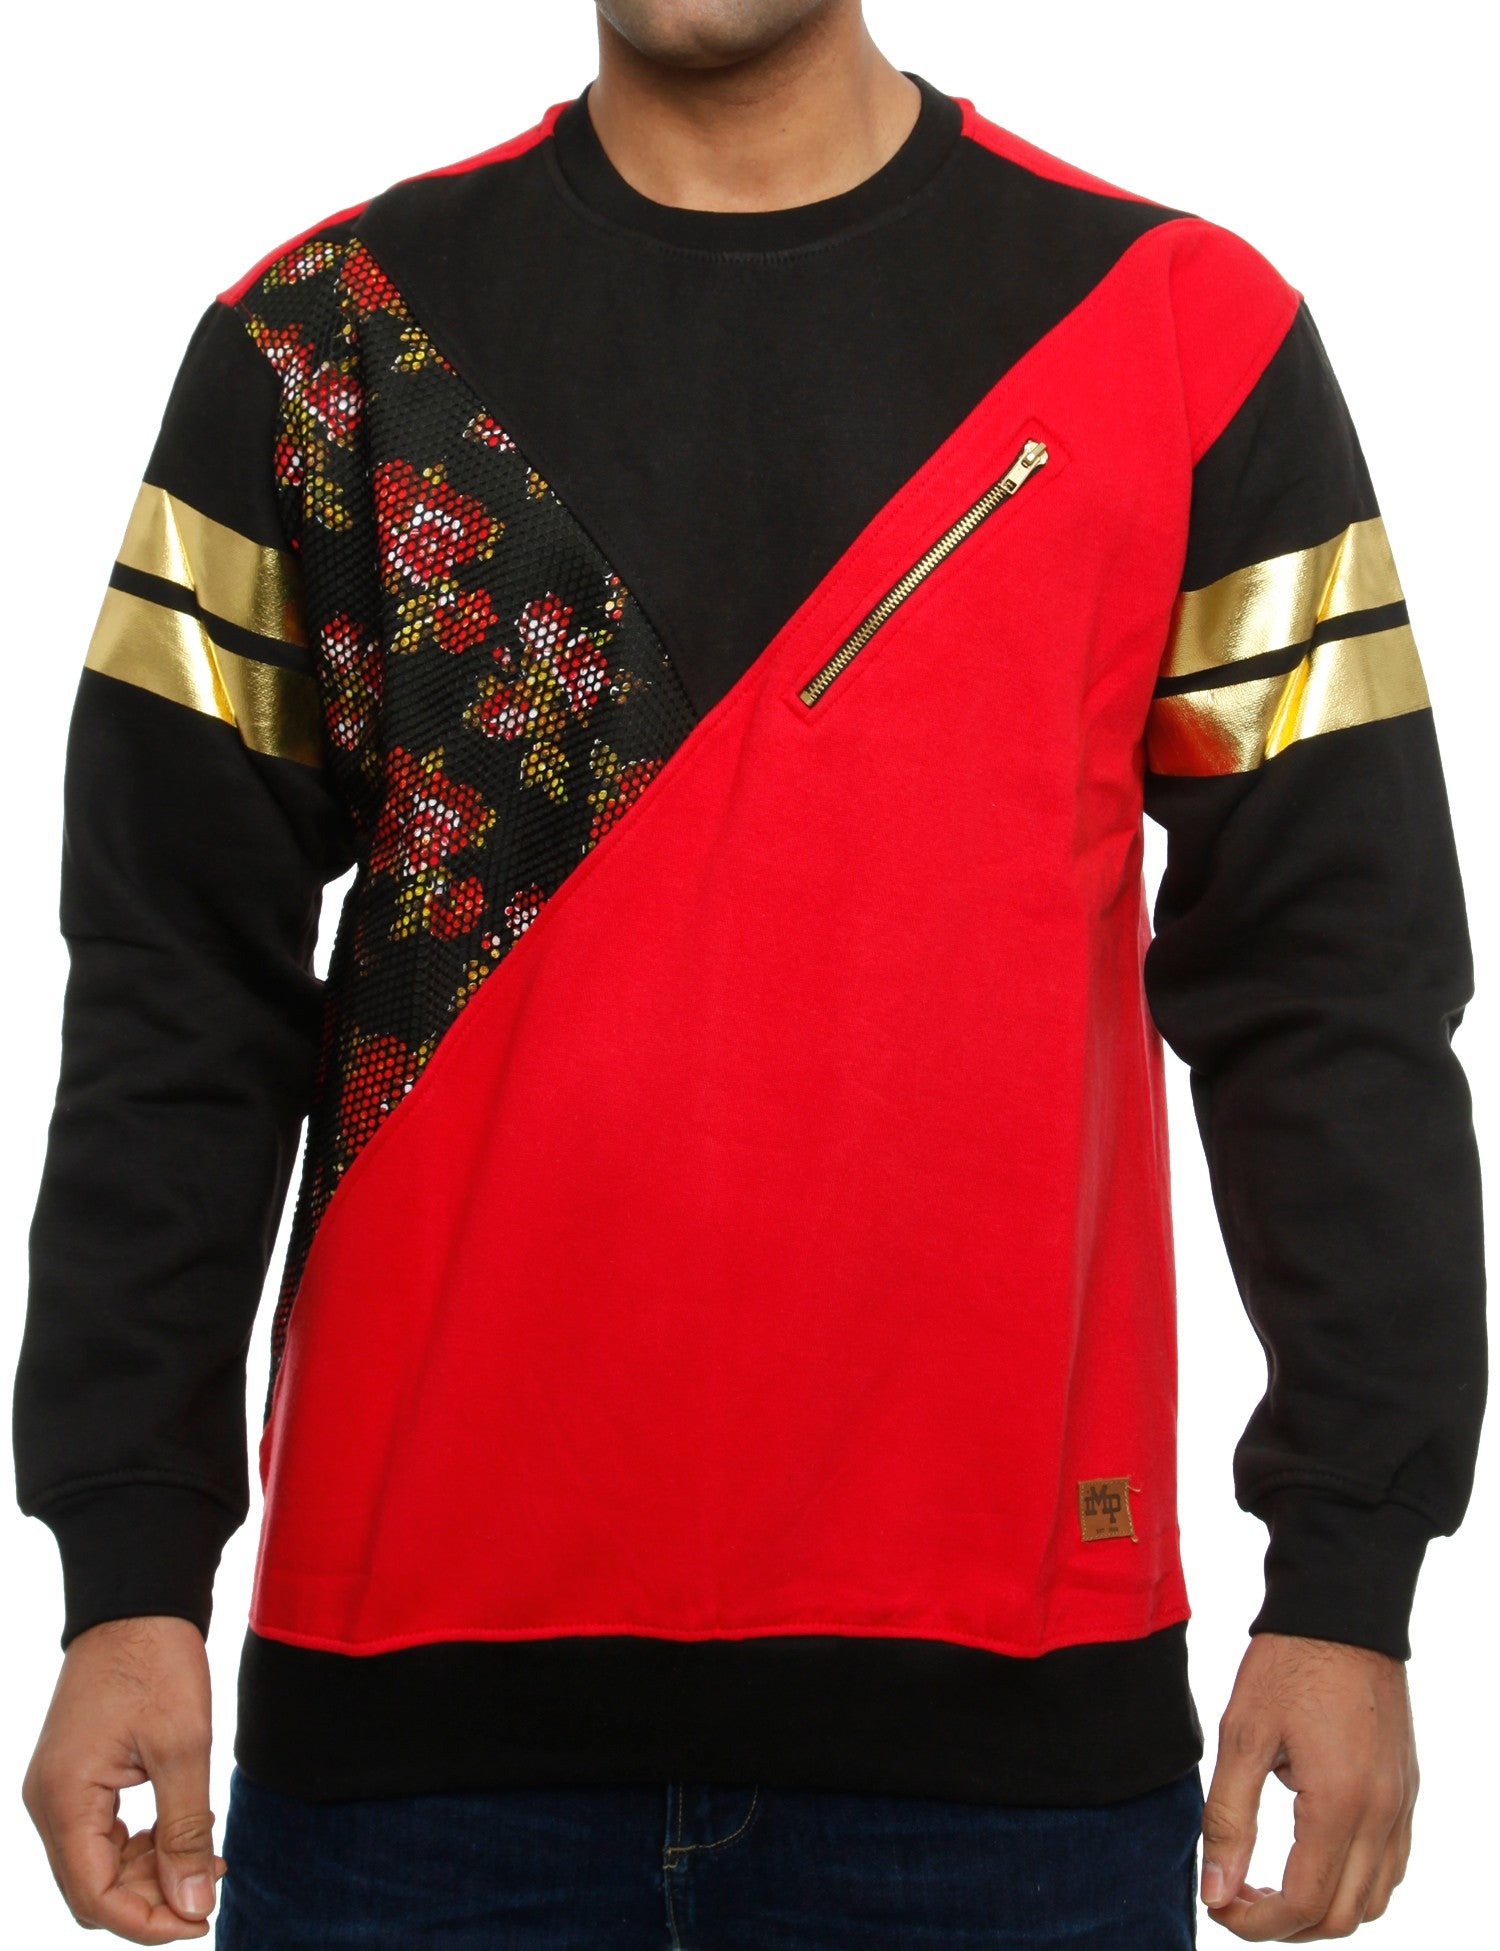 Imperious Sweatshirt CS83 Red